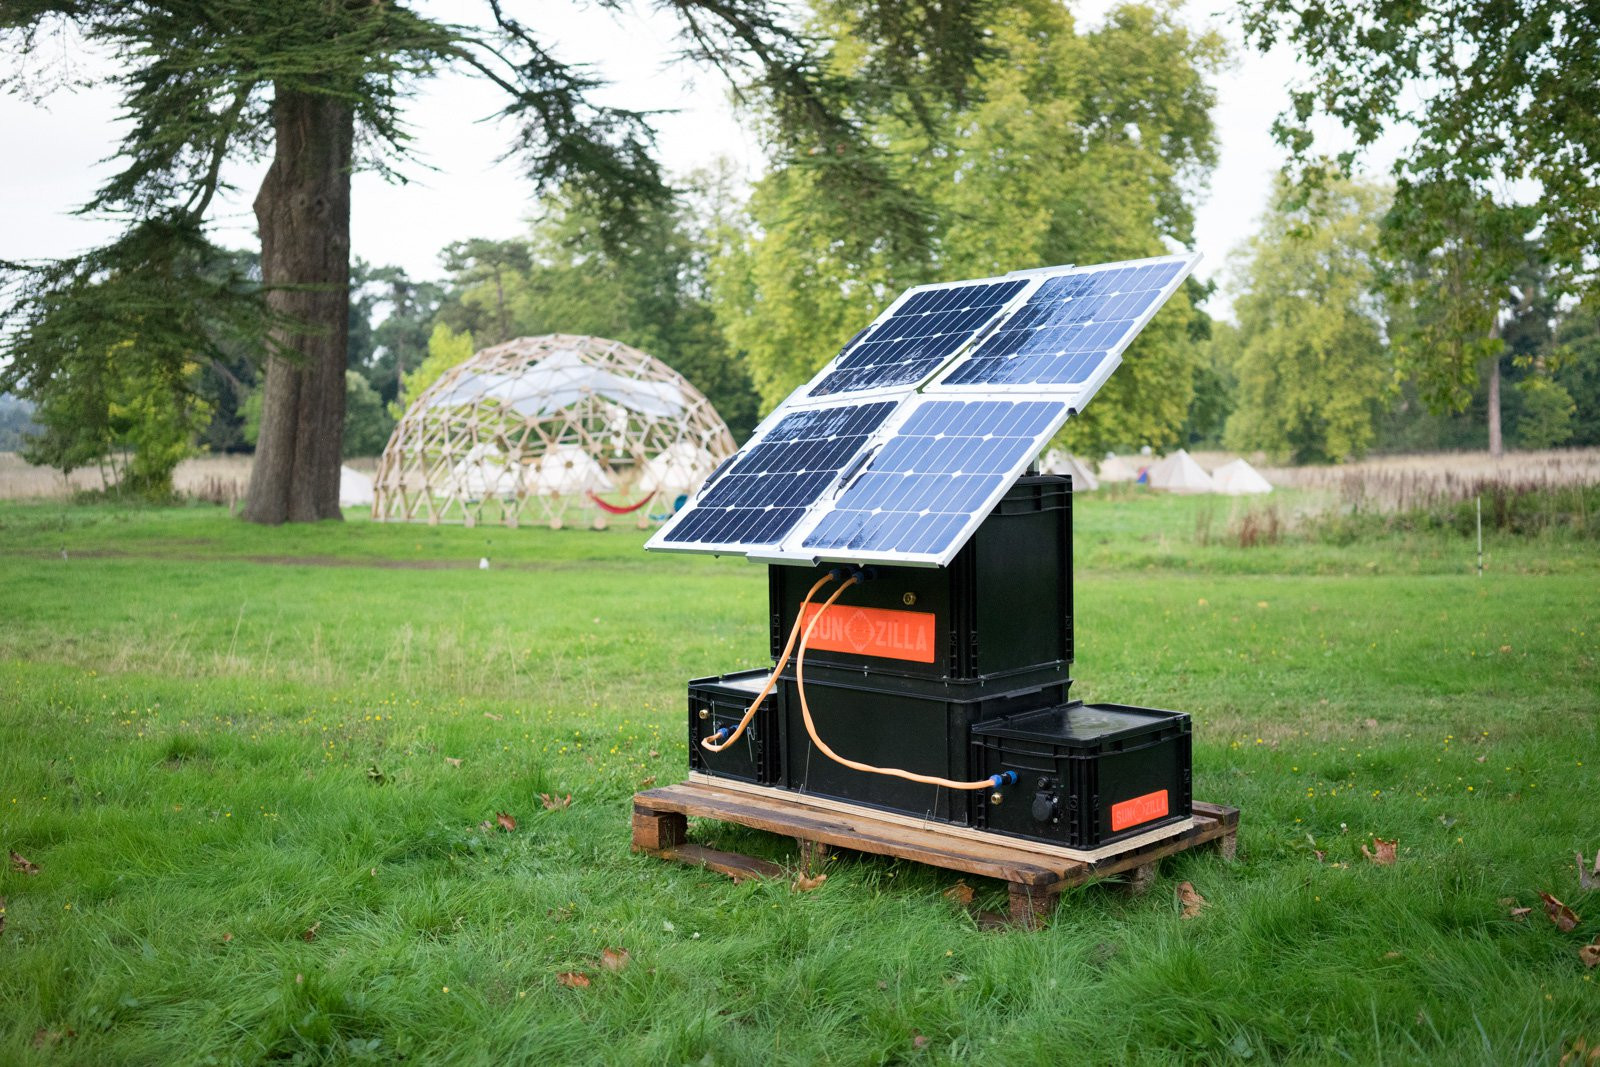 Best ideas about Solar Generator DIY . Save or Pin This Open Source DIY Solar Generator Unfolds Like a Flower Now.